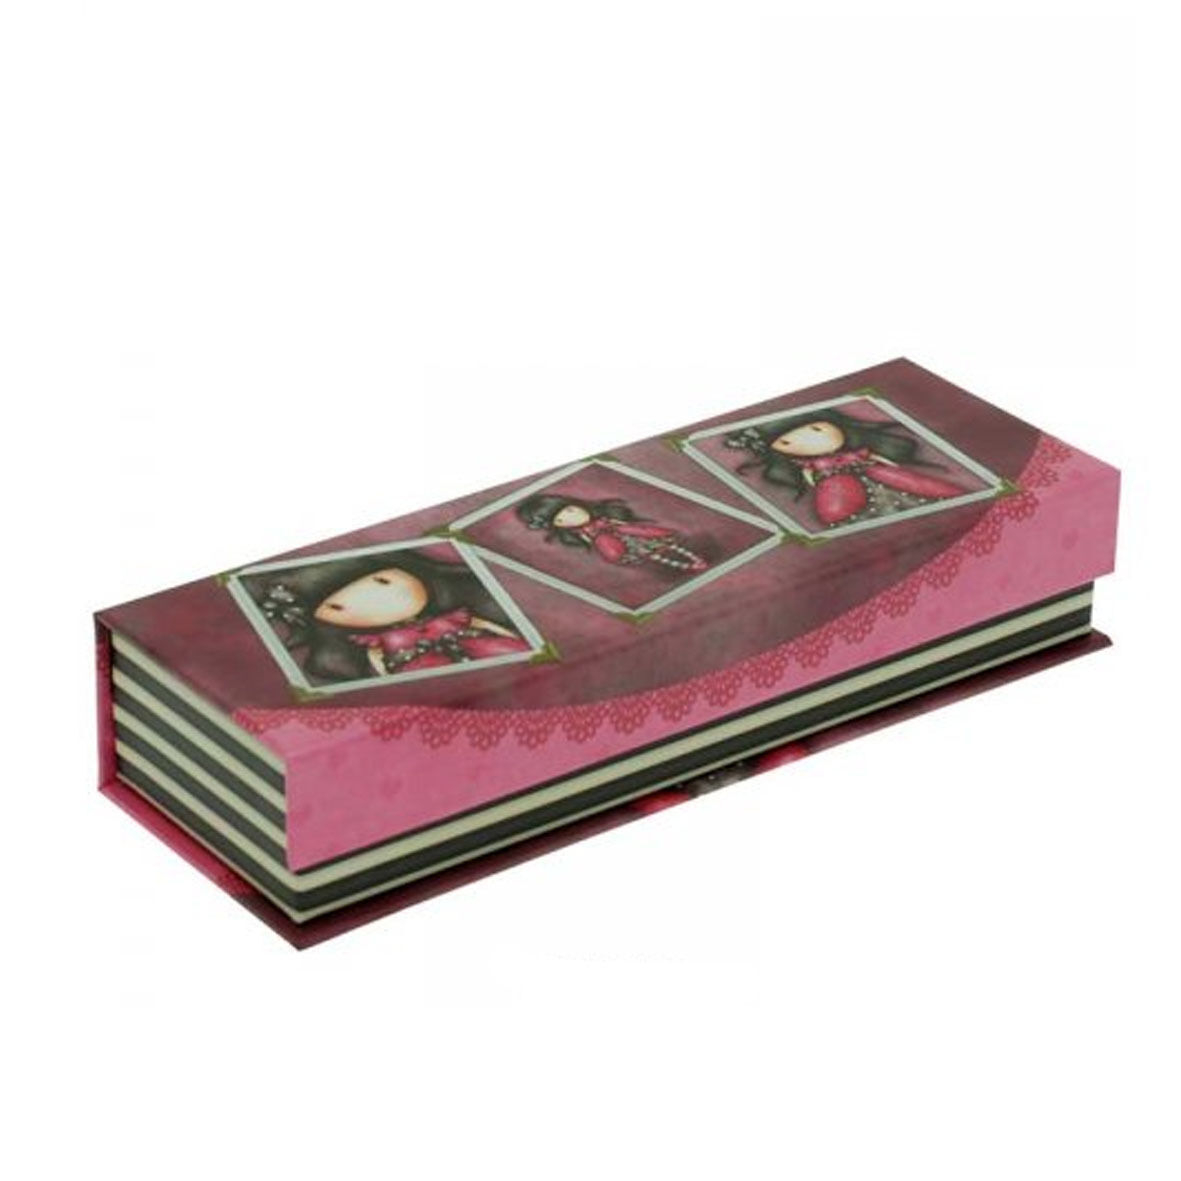 GORJUSS Portapenne e matite pencil box in cartone stampato fucsia 20x7x4 cm